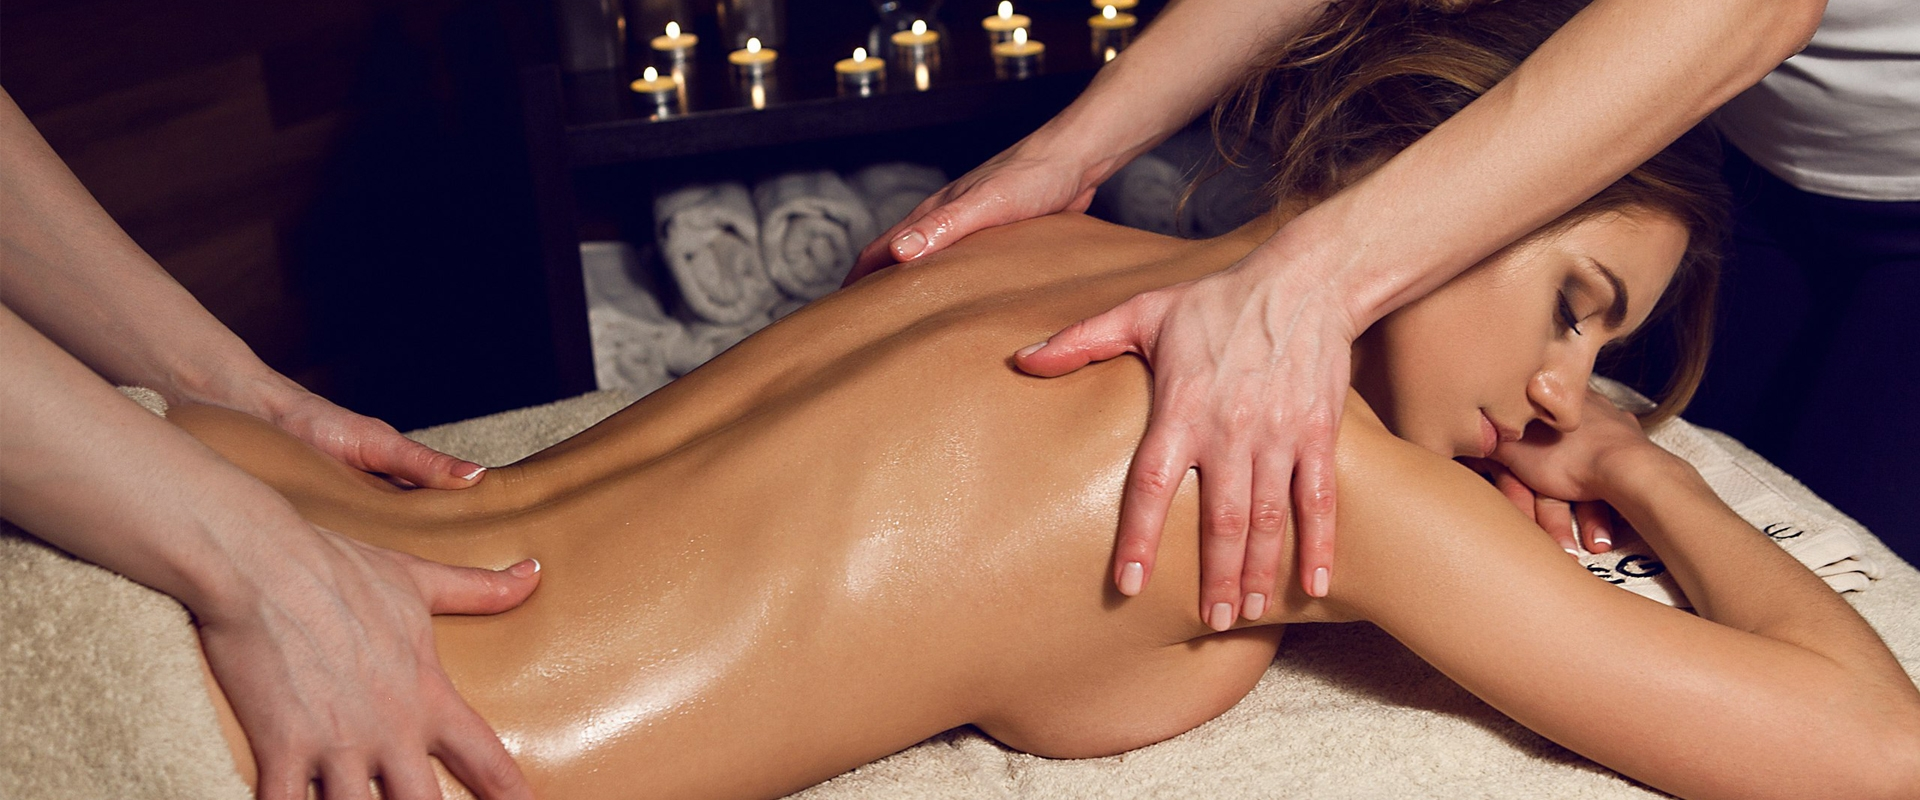 All Secrets And Intimate Delights Of An Erotic Massage